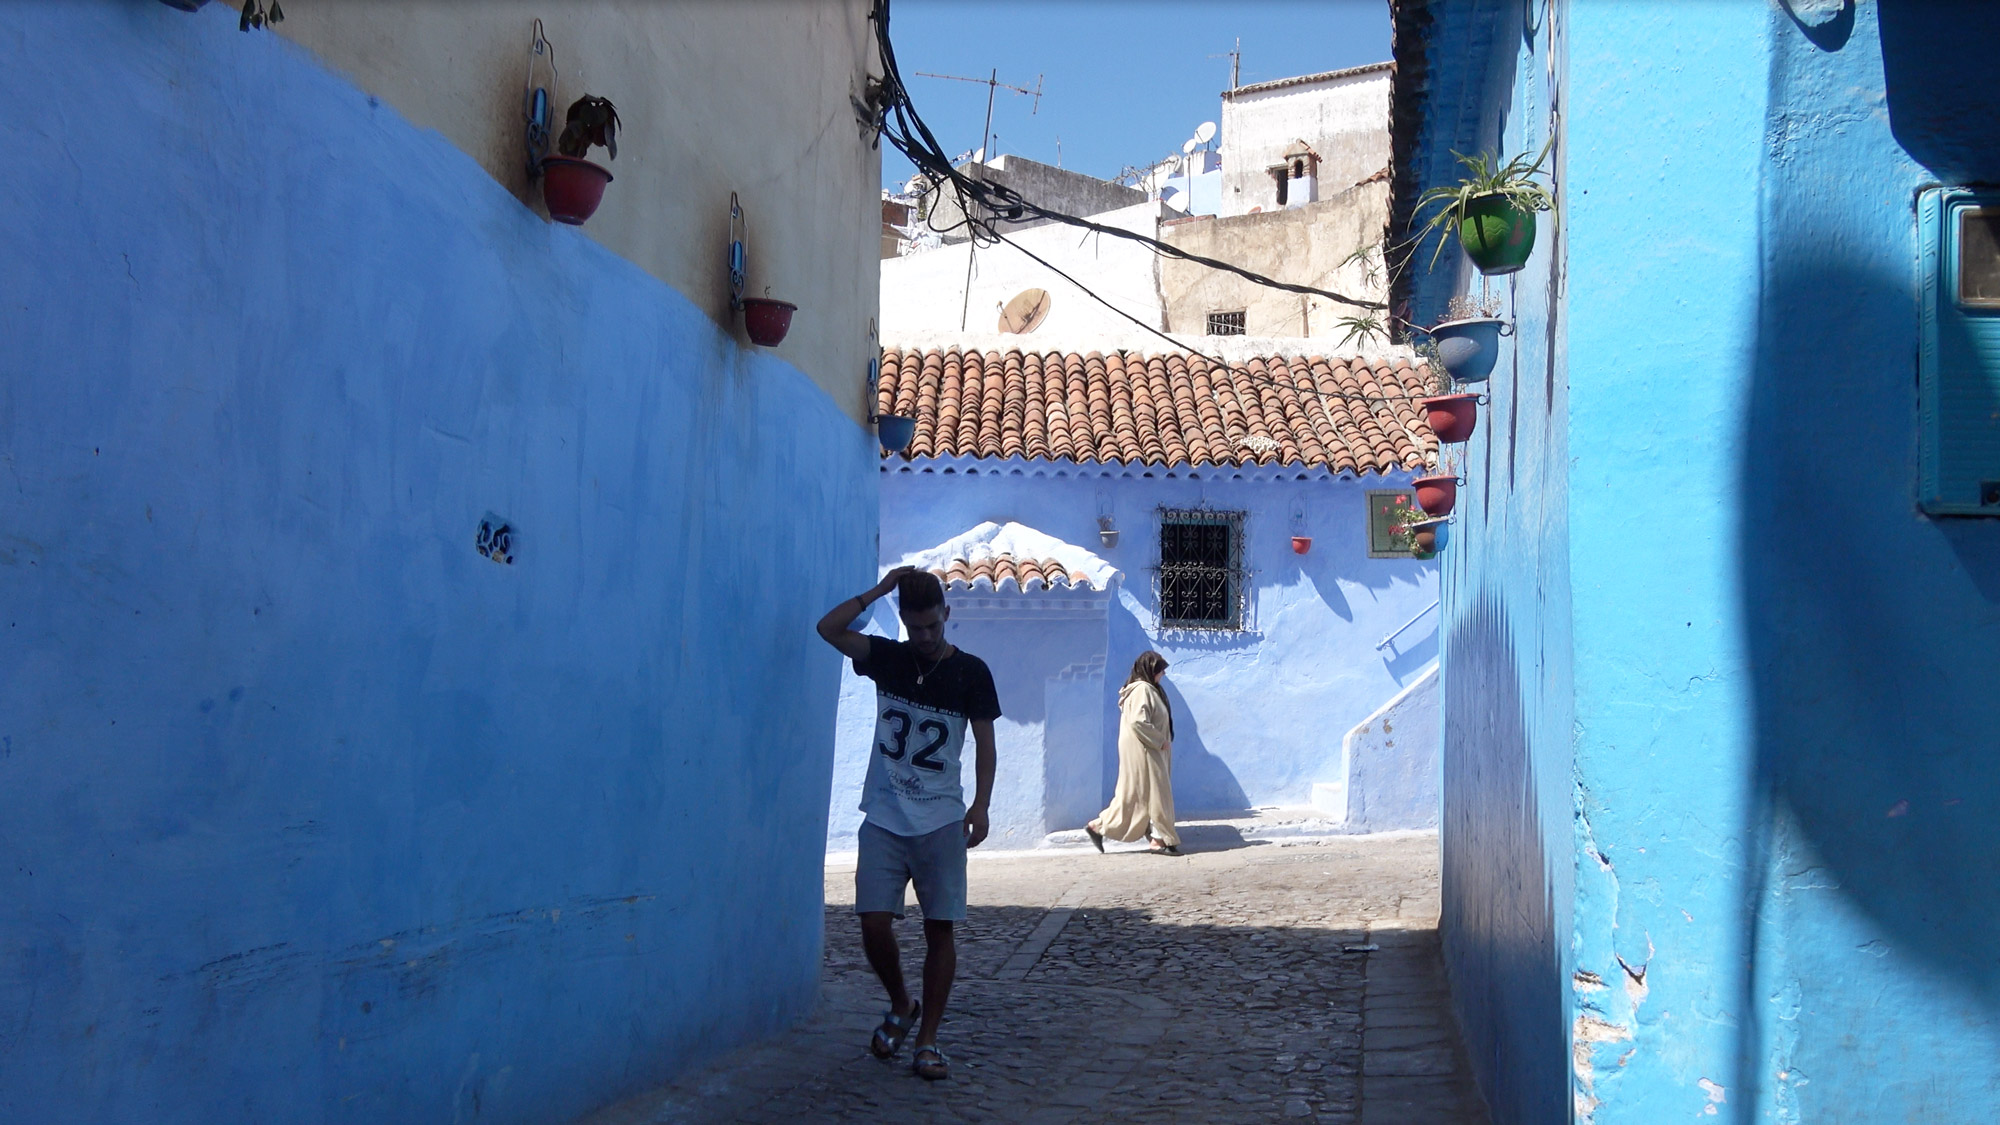 The picturesque town of Chefchaouen is the main attraction for tourists. Rural tourism operators want more visitors to set foot outside the town.